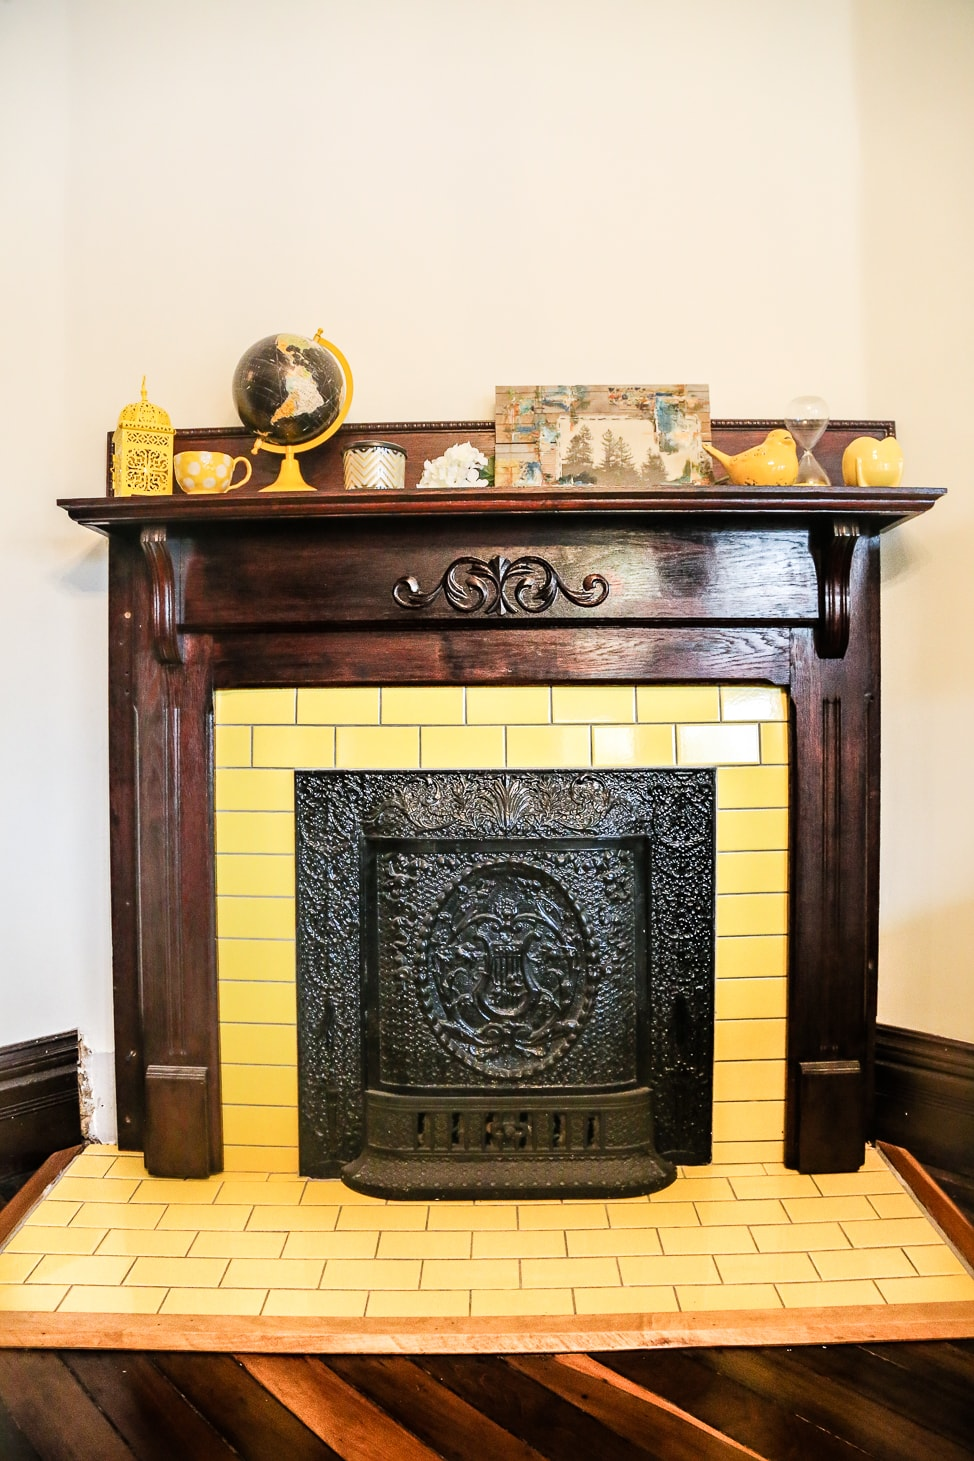 Home Renovation Tiling Fireplaces